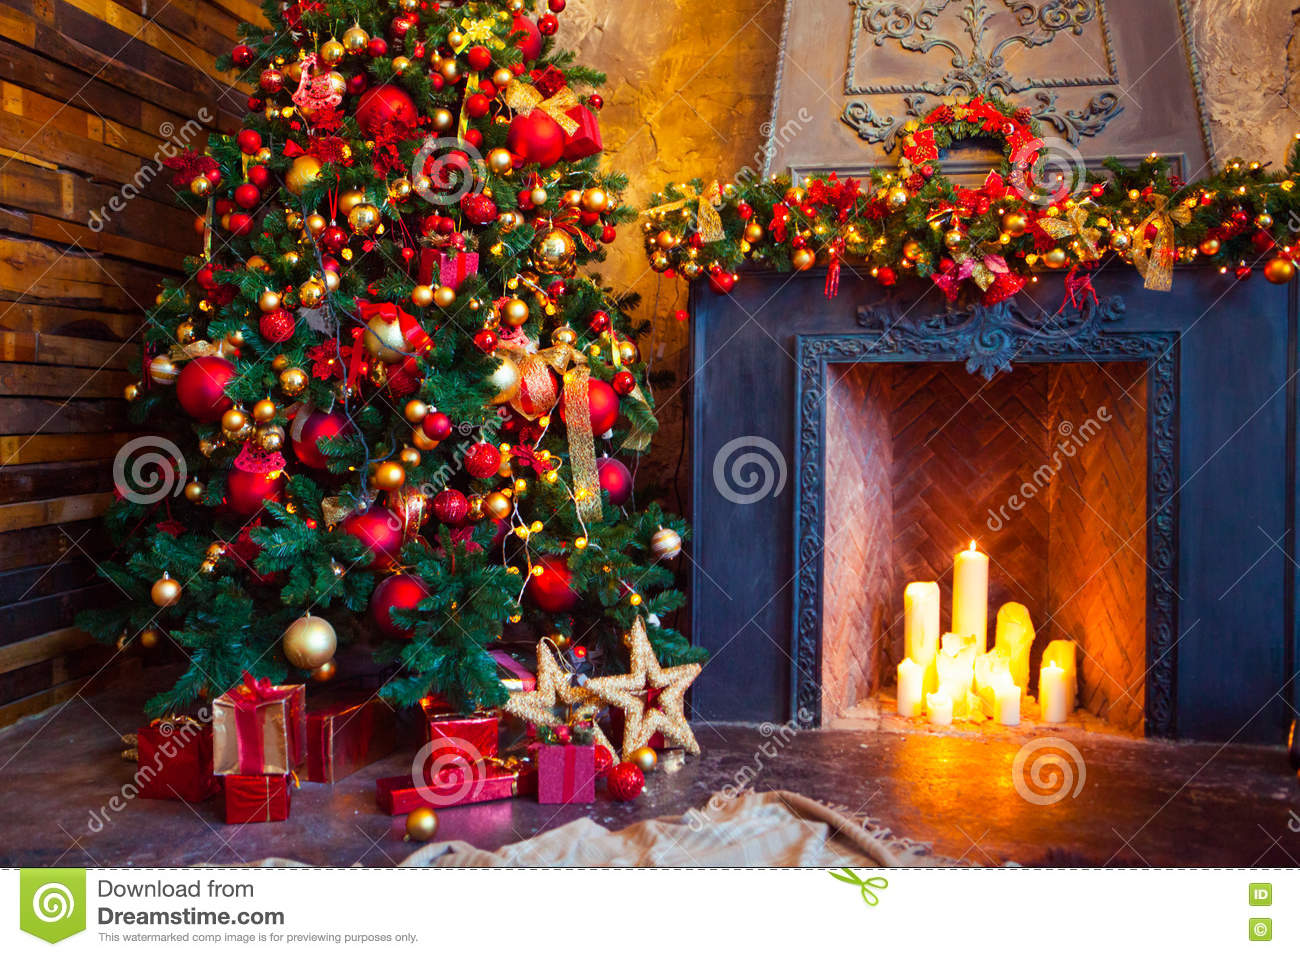 Presents Toys Christmas : Christmas room interior design xmas tree decorated by